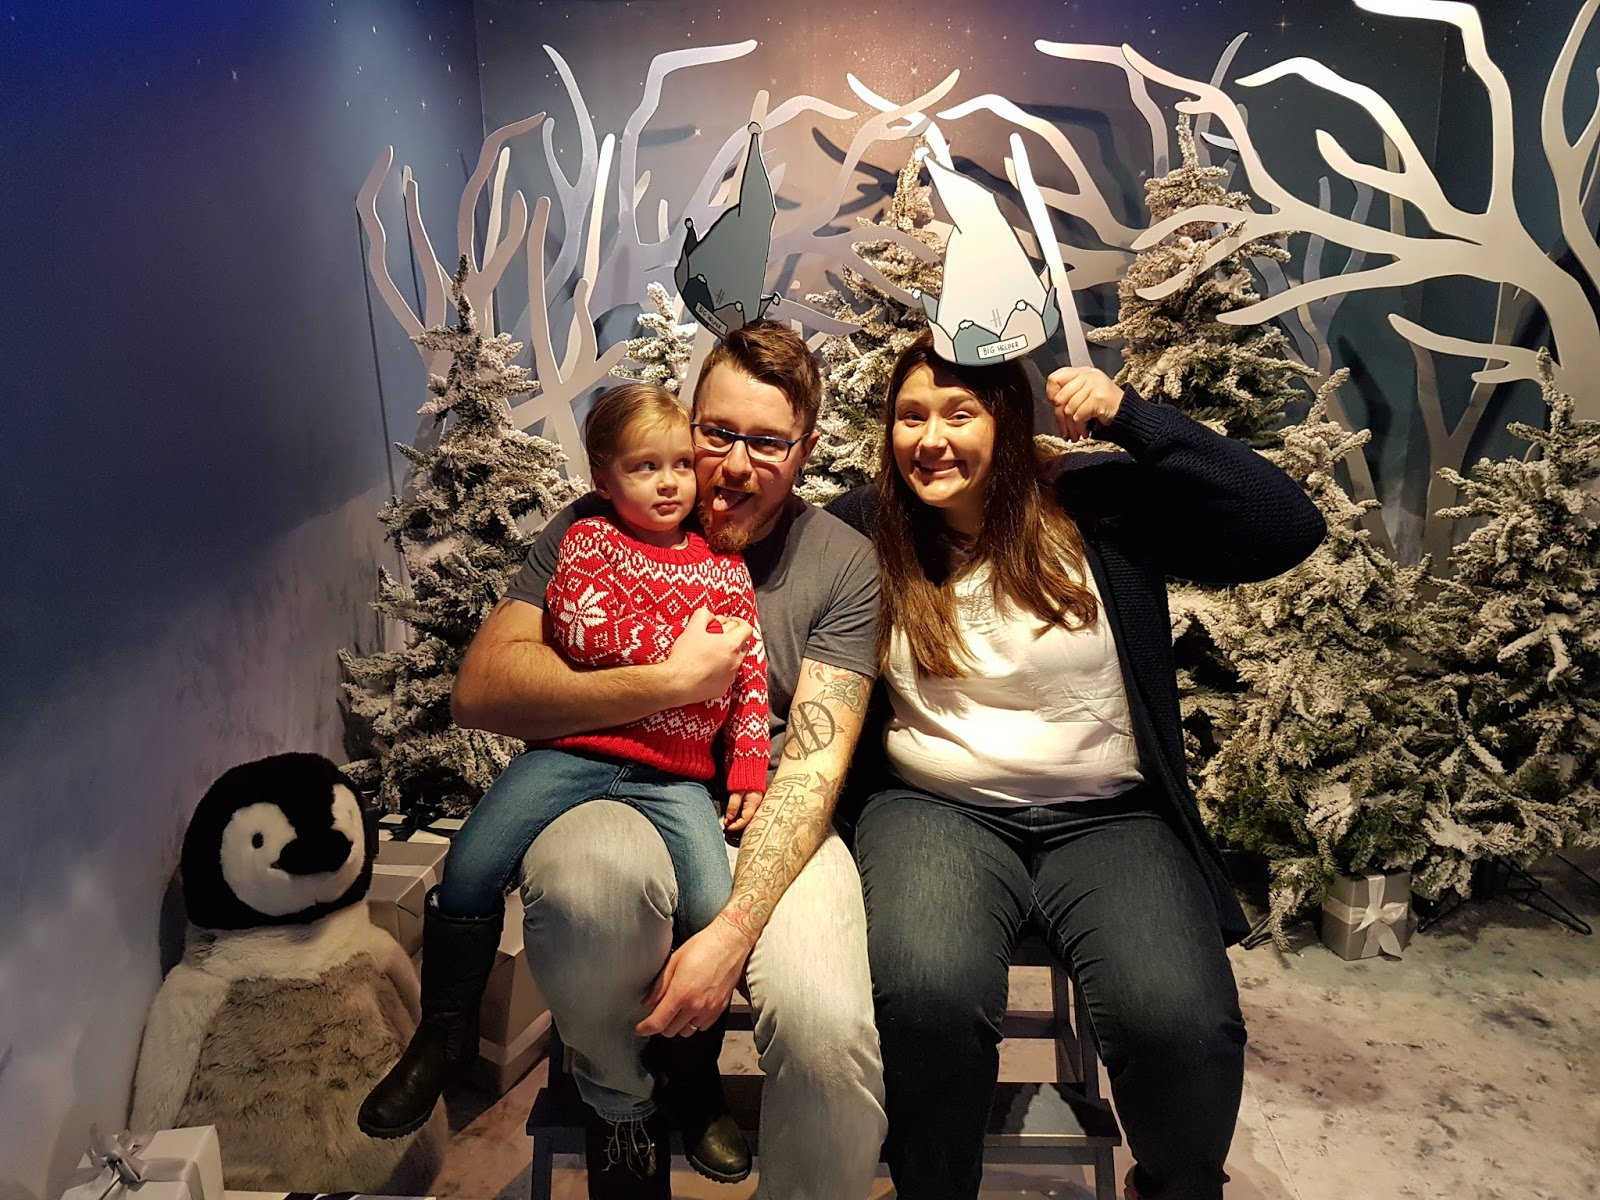 family picture with funny faces at harrods christmas grotto 2016